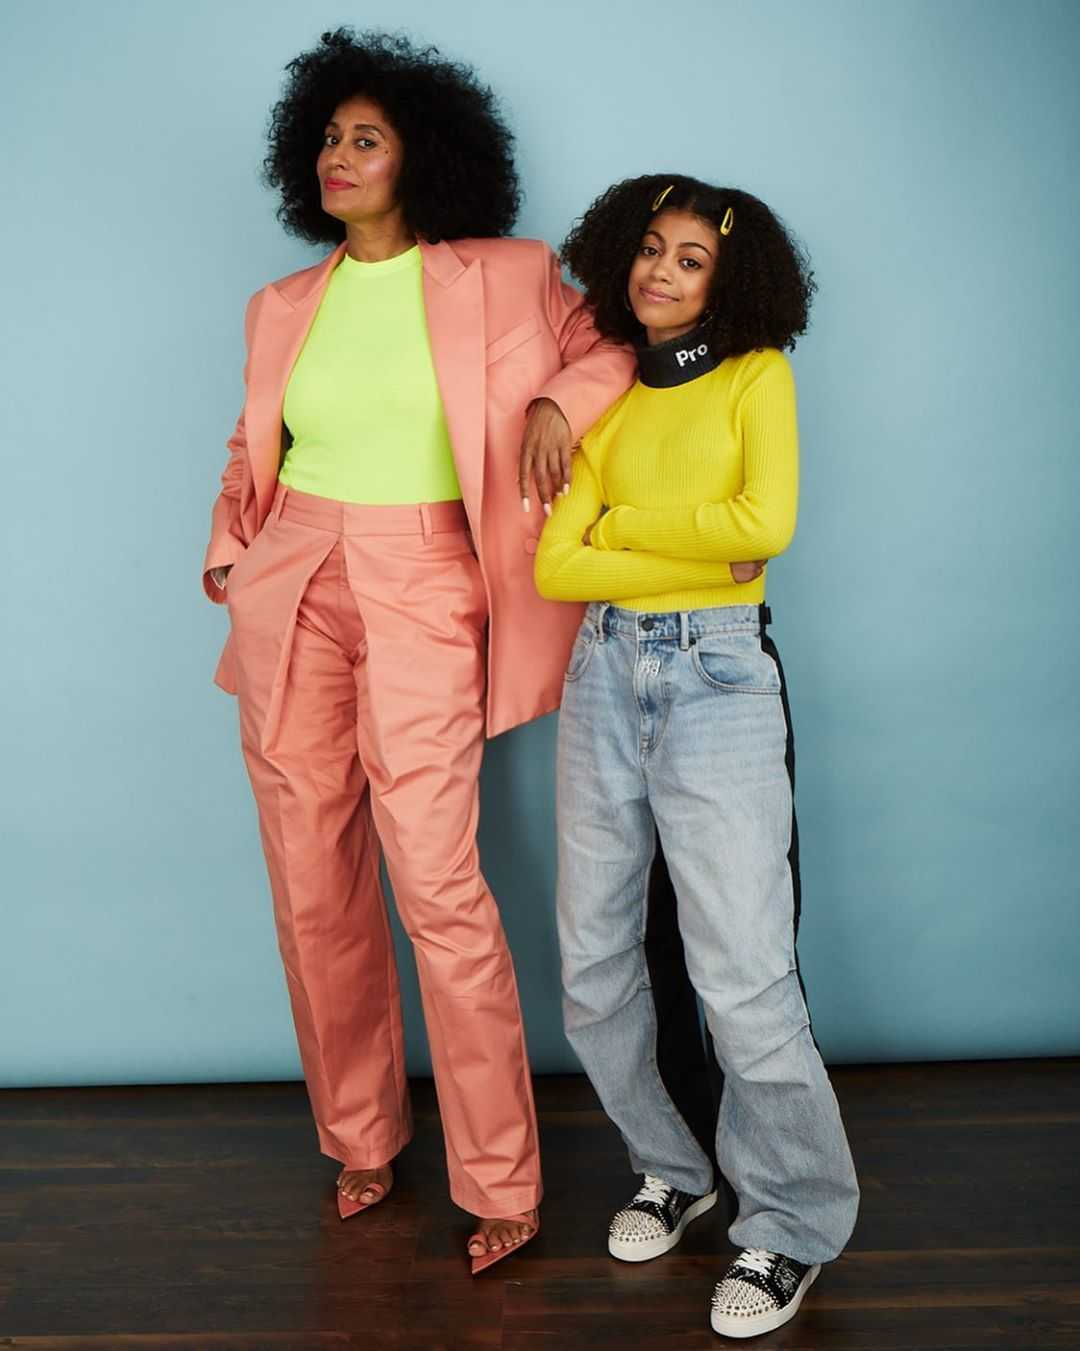 arica himmel and tracee ellis ross